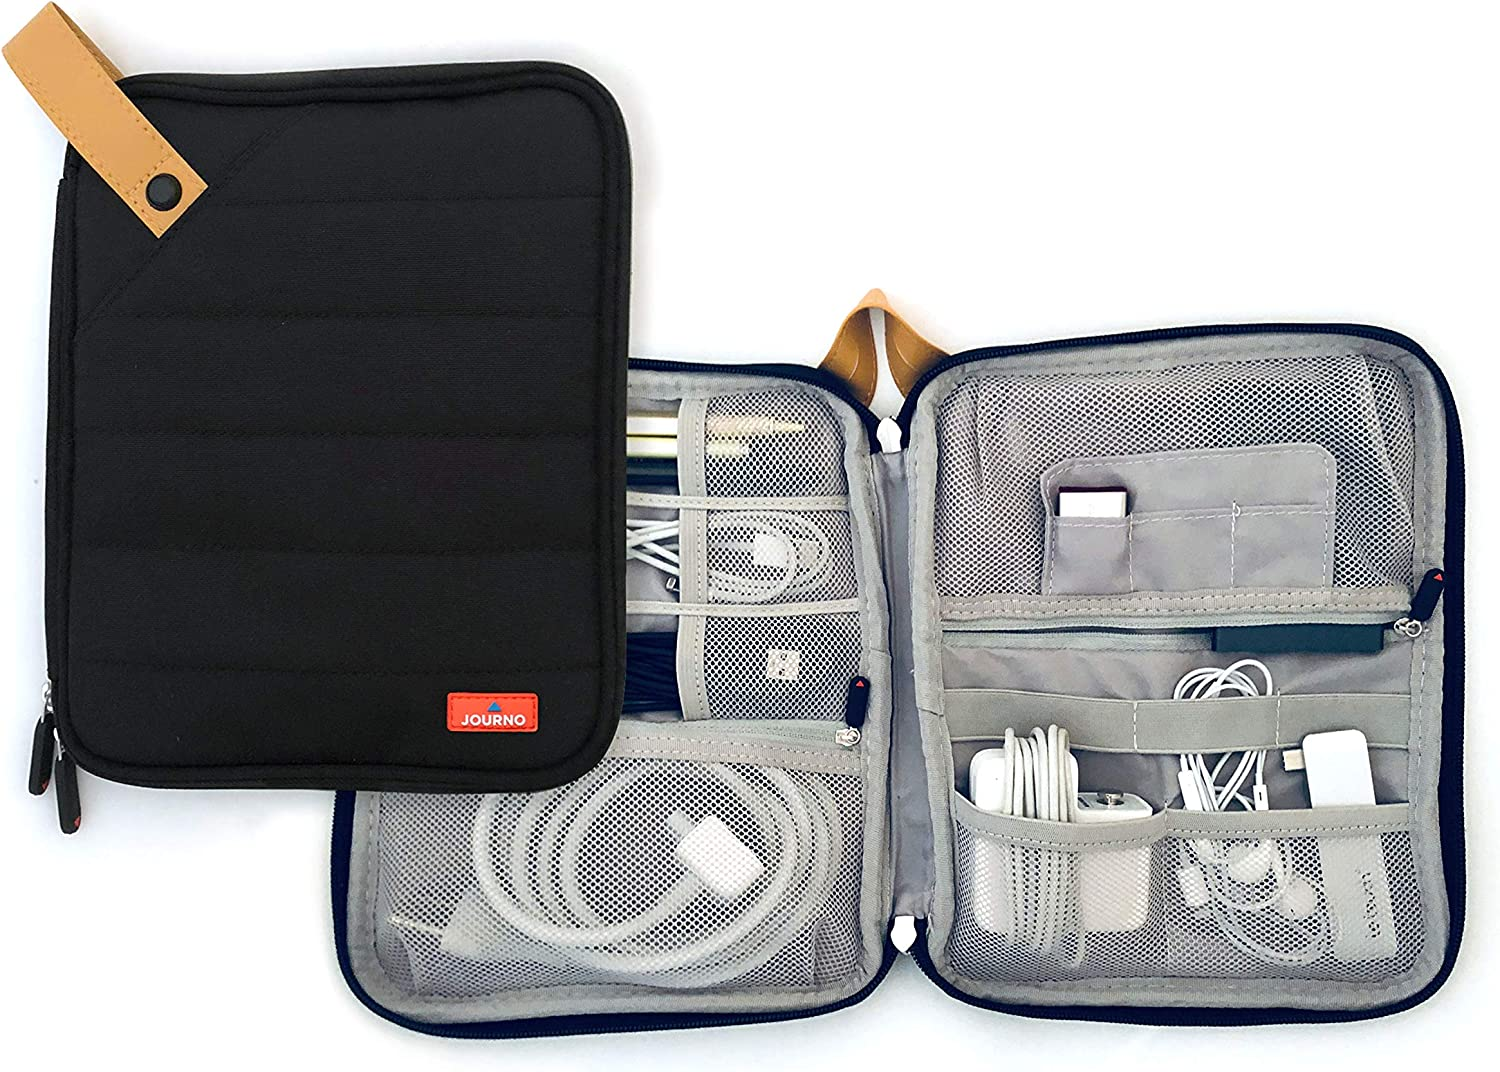 The Travel Cord Case Organizer travel product recommended by Dane Homenick on Lifney.